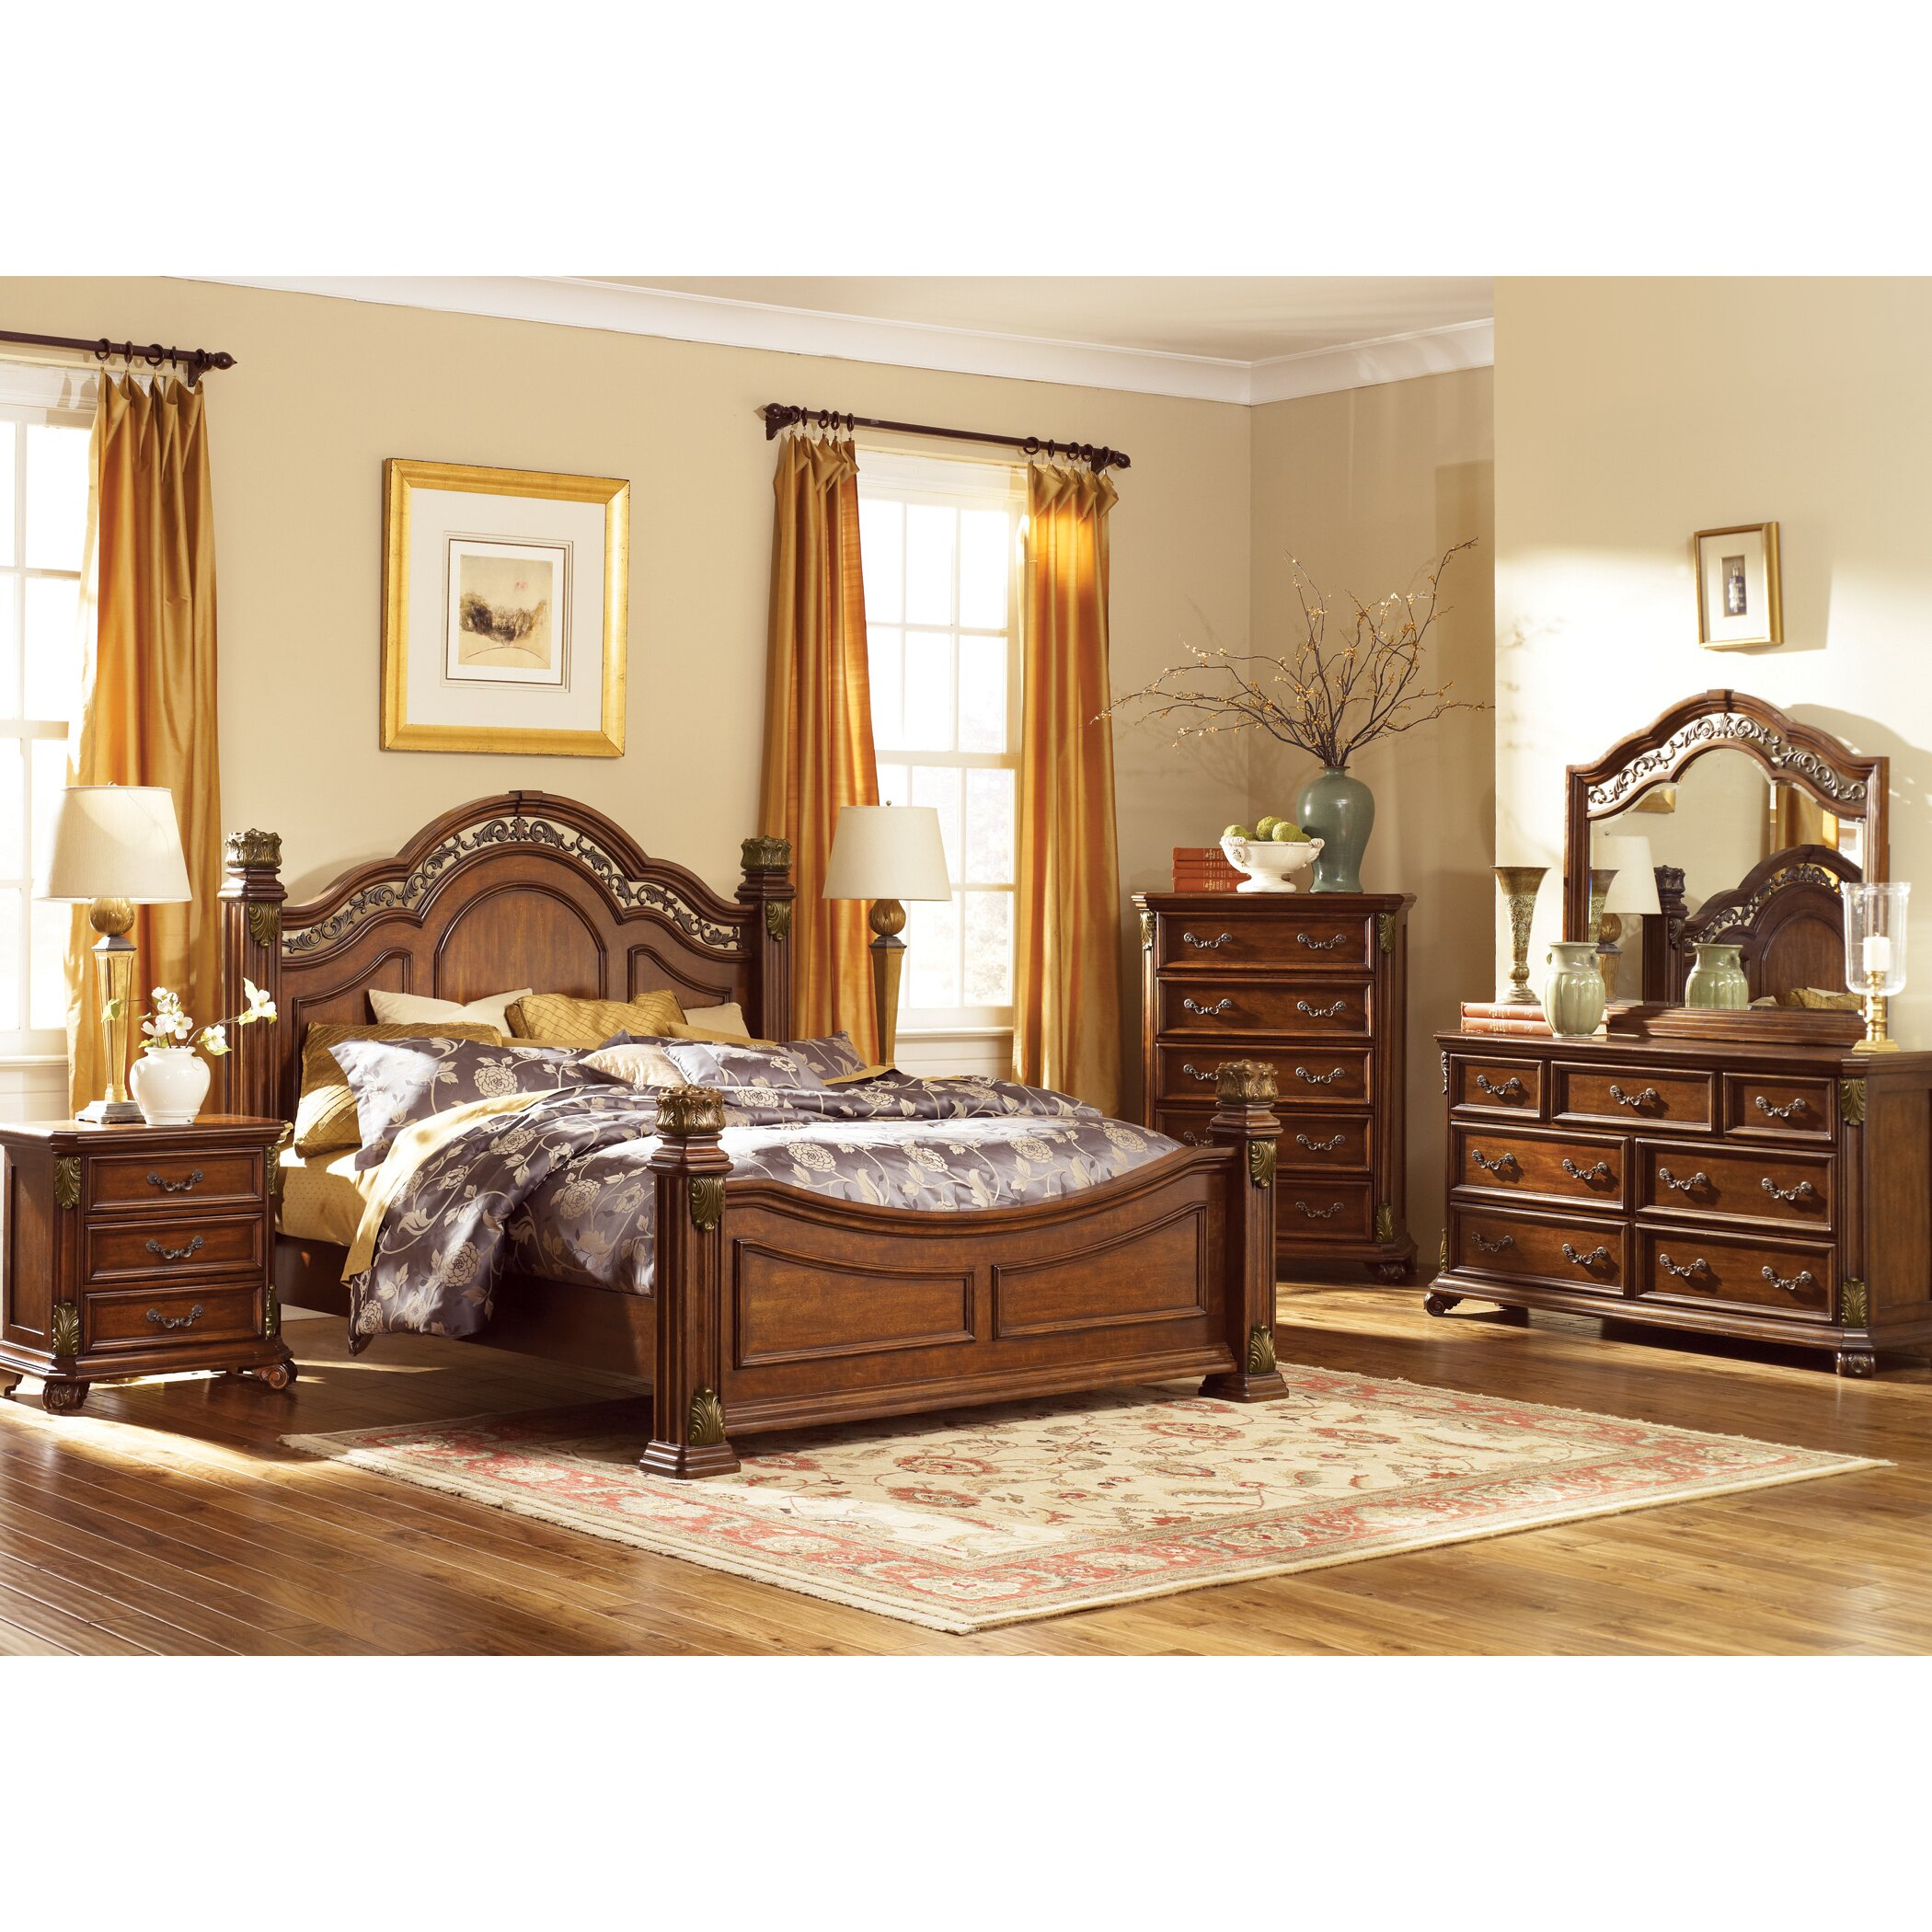 Davis Furniture Bedroom Sets Images Guru Furniture Bedroom Poster